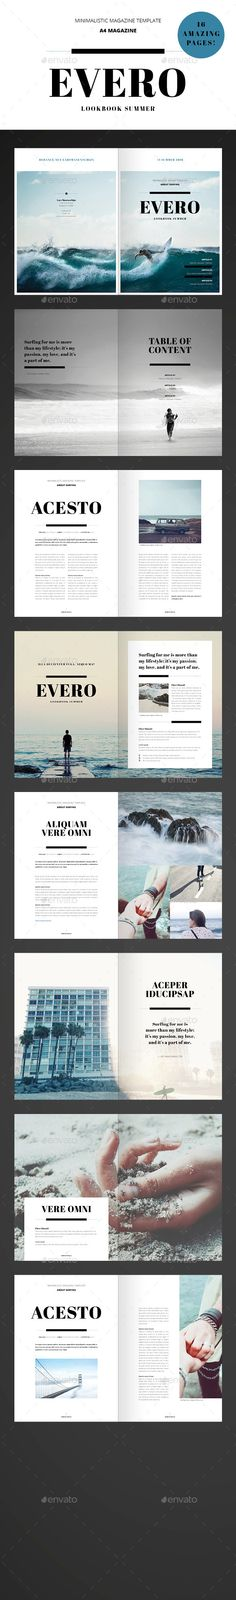 Amazing Minimal Magazine - InDesign Template #design Download: http://graphicriver.net/item/amazing-minimal-magazine-indesign-template-/11957652?ref=ksioks